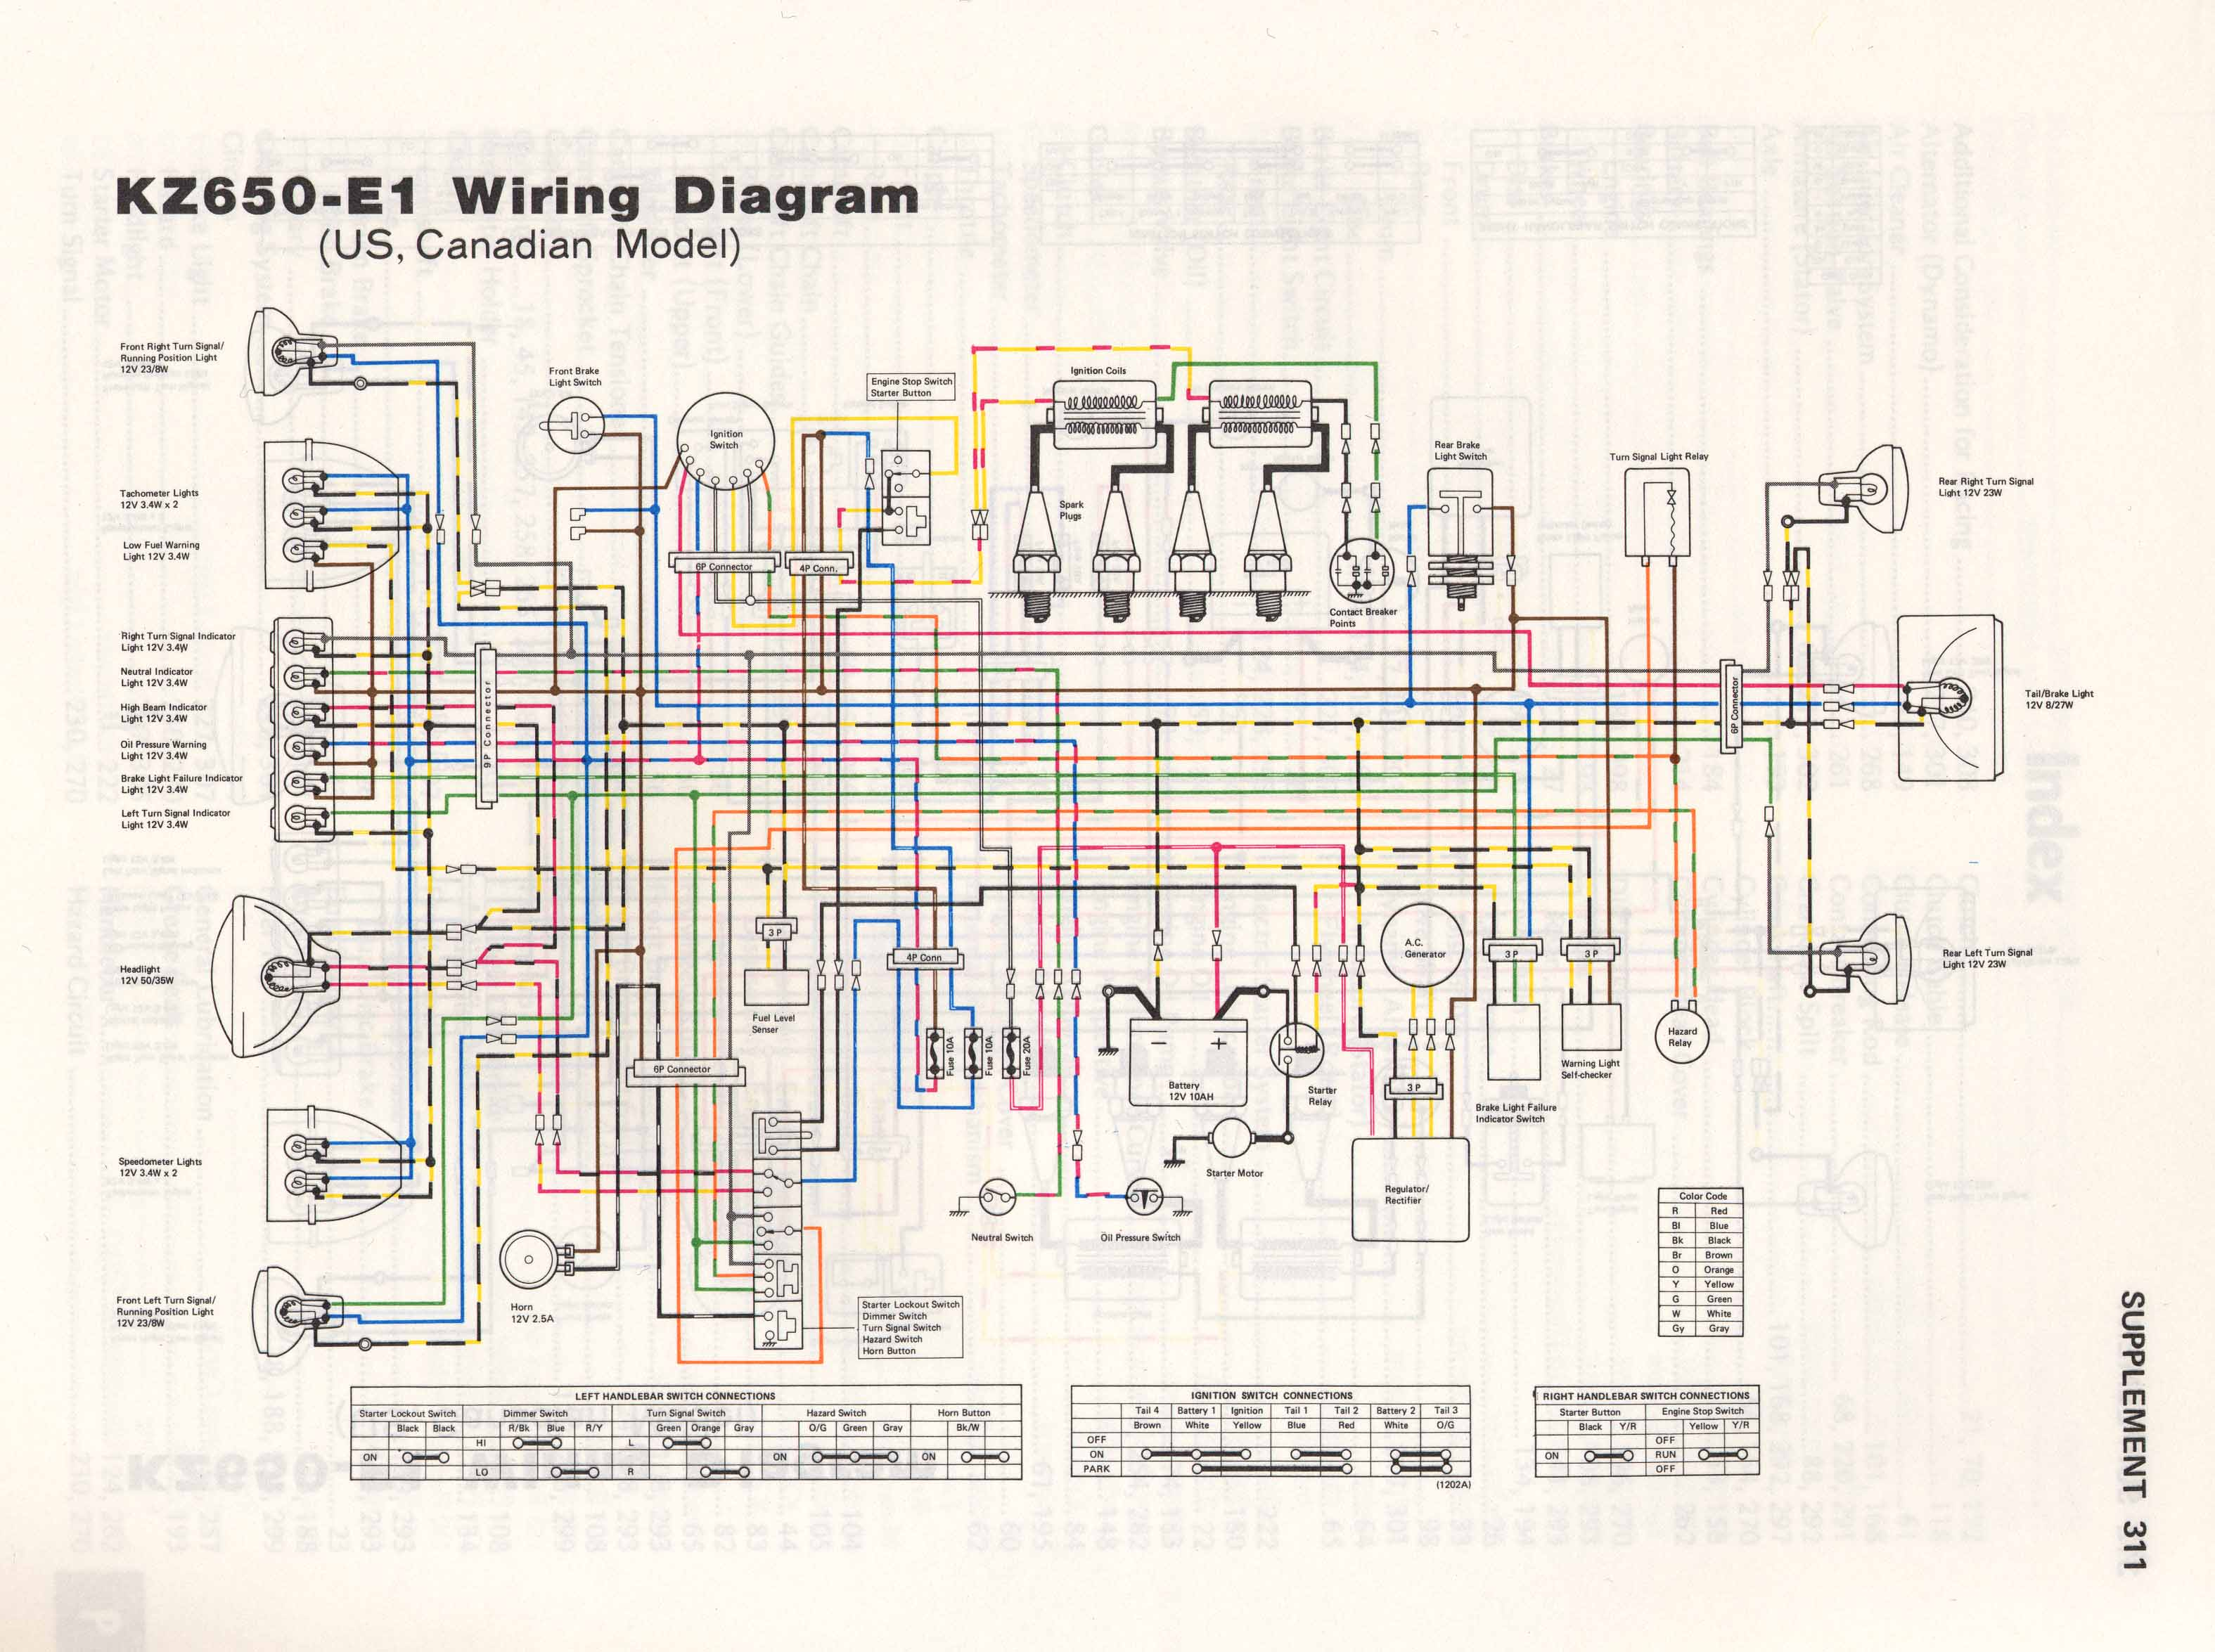 1981 kz650 wiring diagram 80 kz650 wiring diagram kz650 electrical guru advice needed. - kzrider forum ...